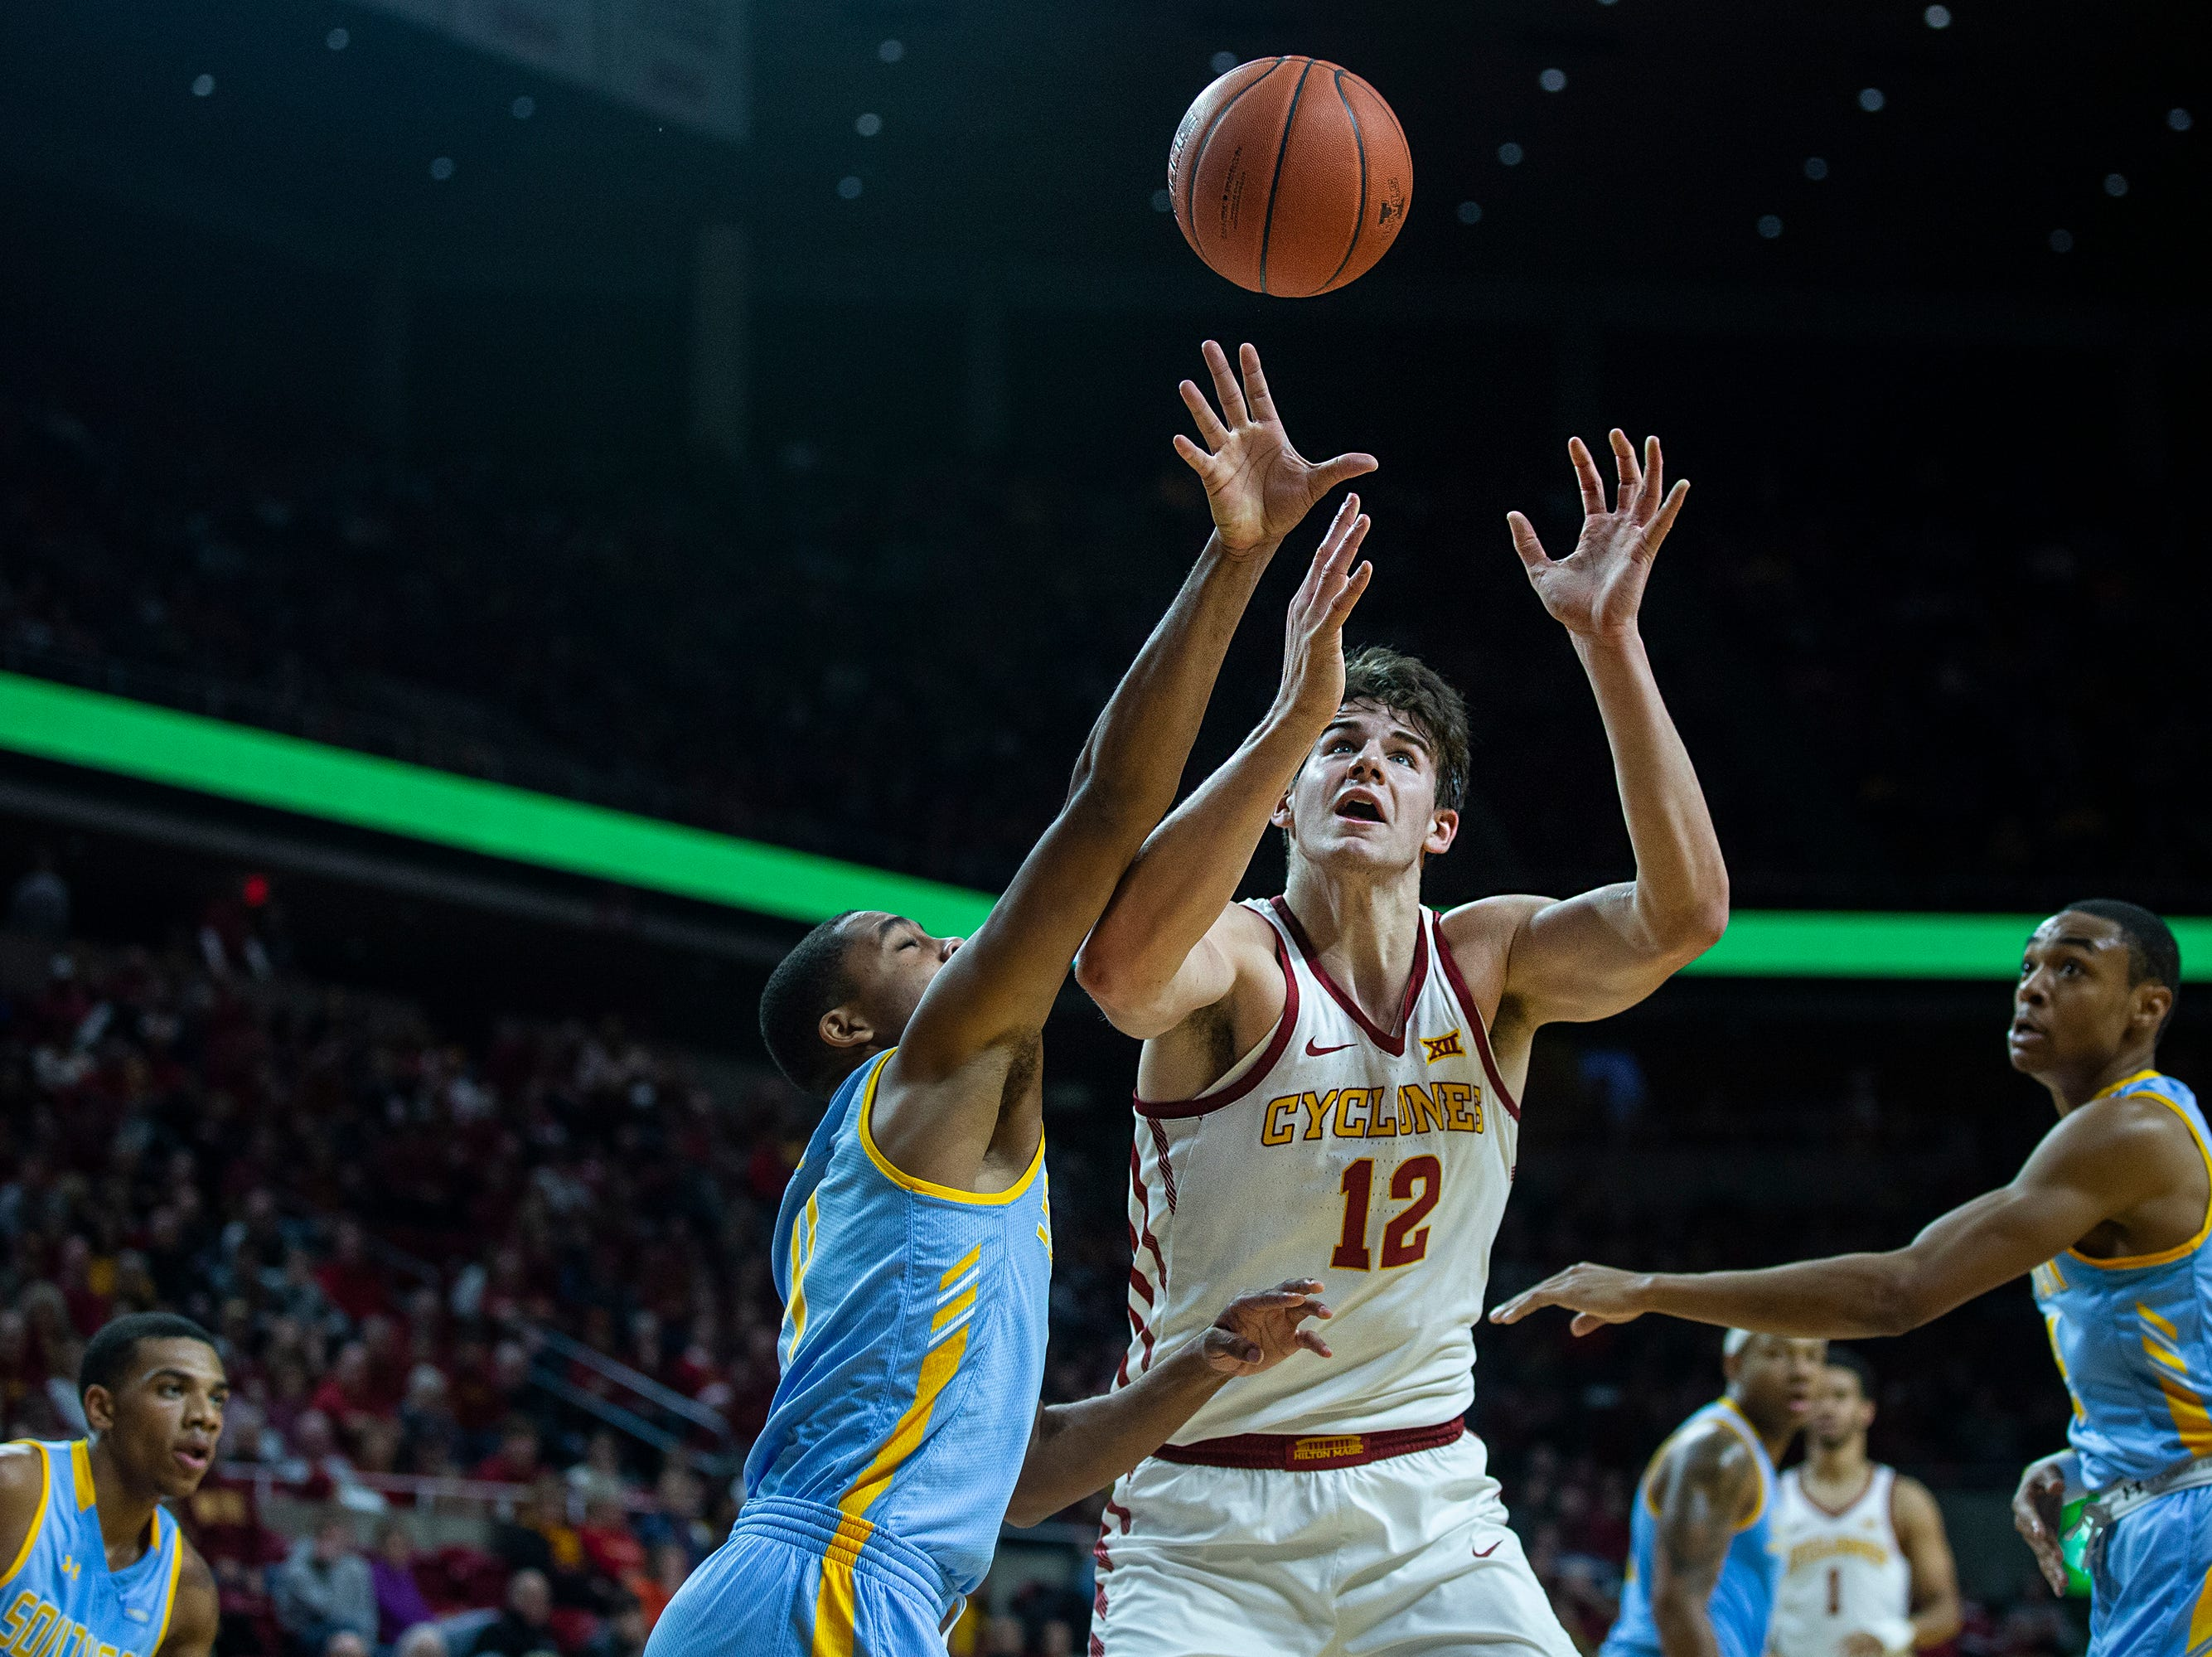 Iowa State's Michael Jacobson reaches for the ball during the Iowa State men's basketball game against Southern on Sunday, Dec. 9, 2018, in Hilton Coliseum.